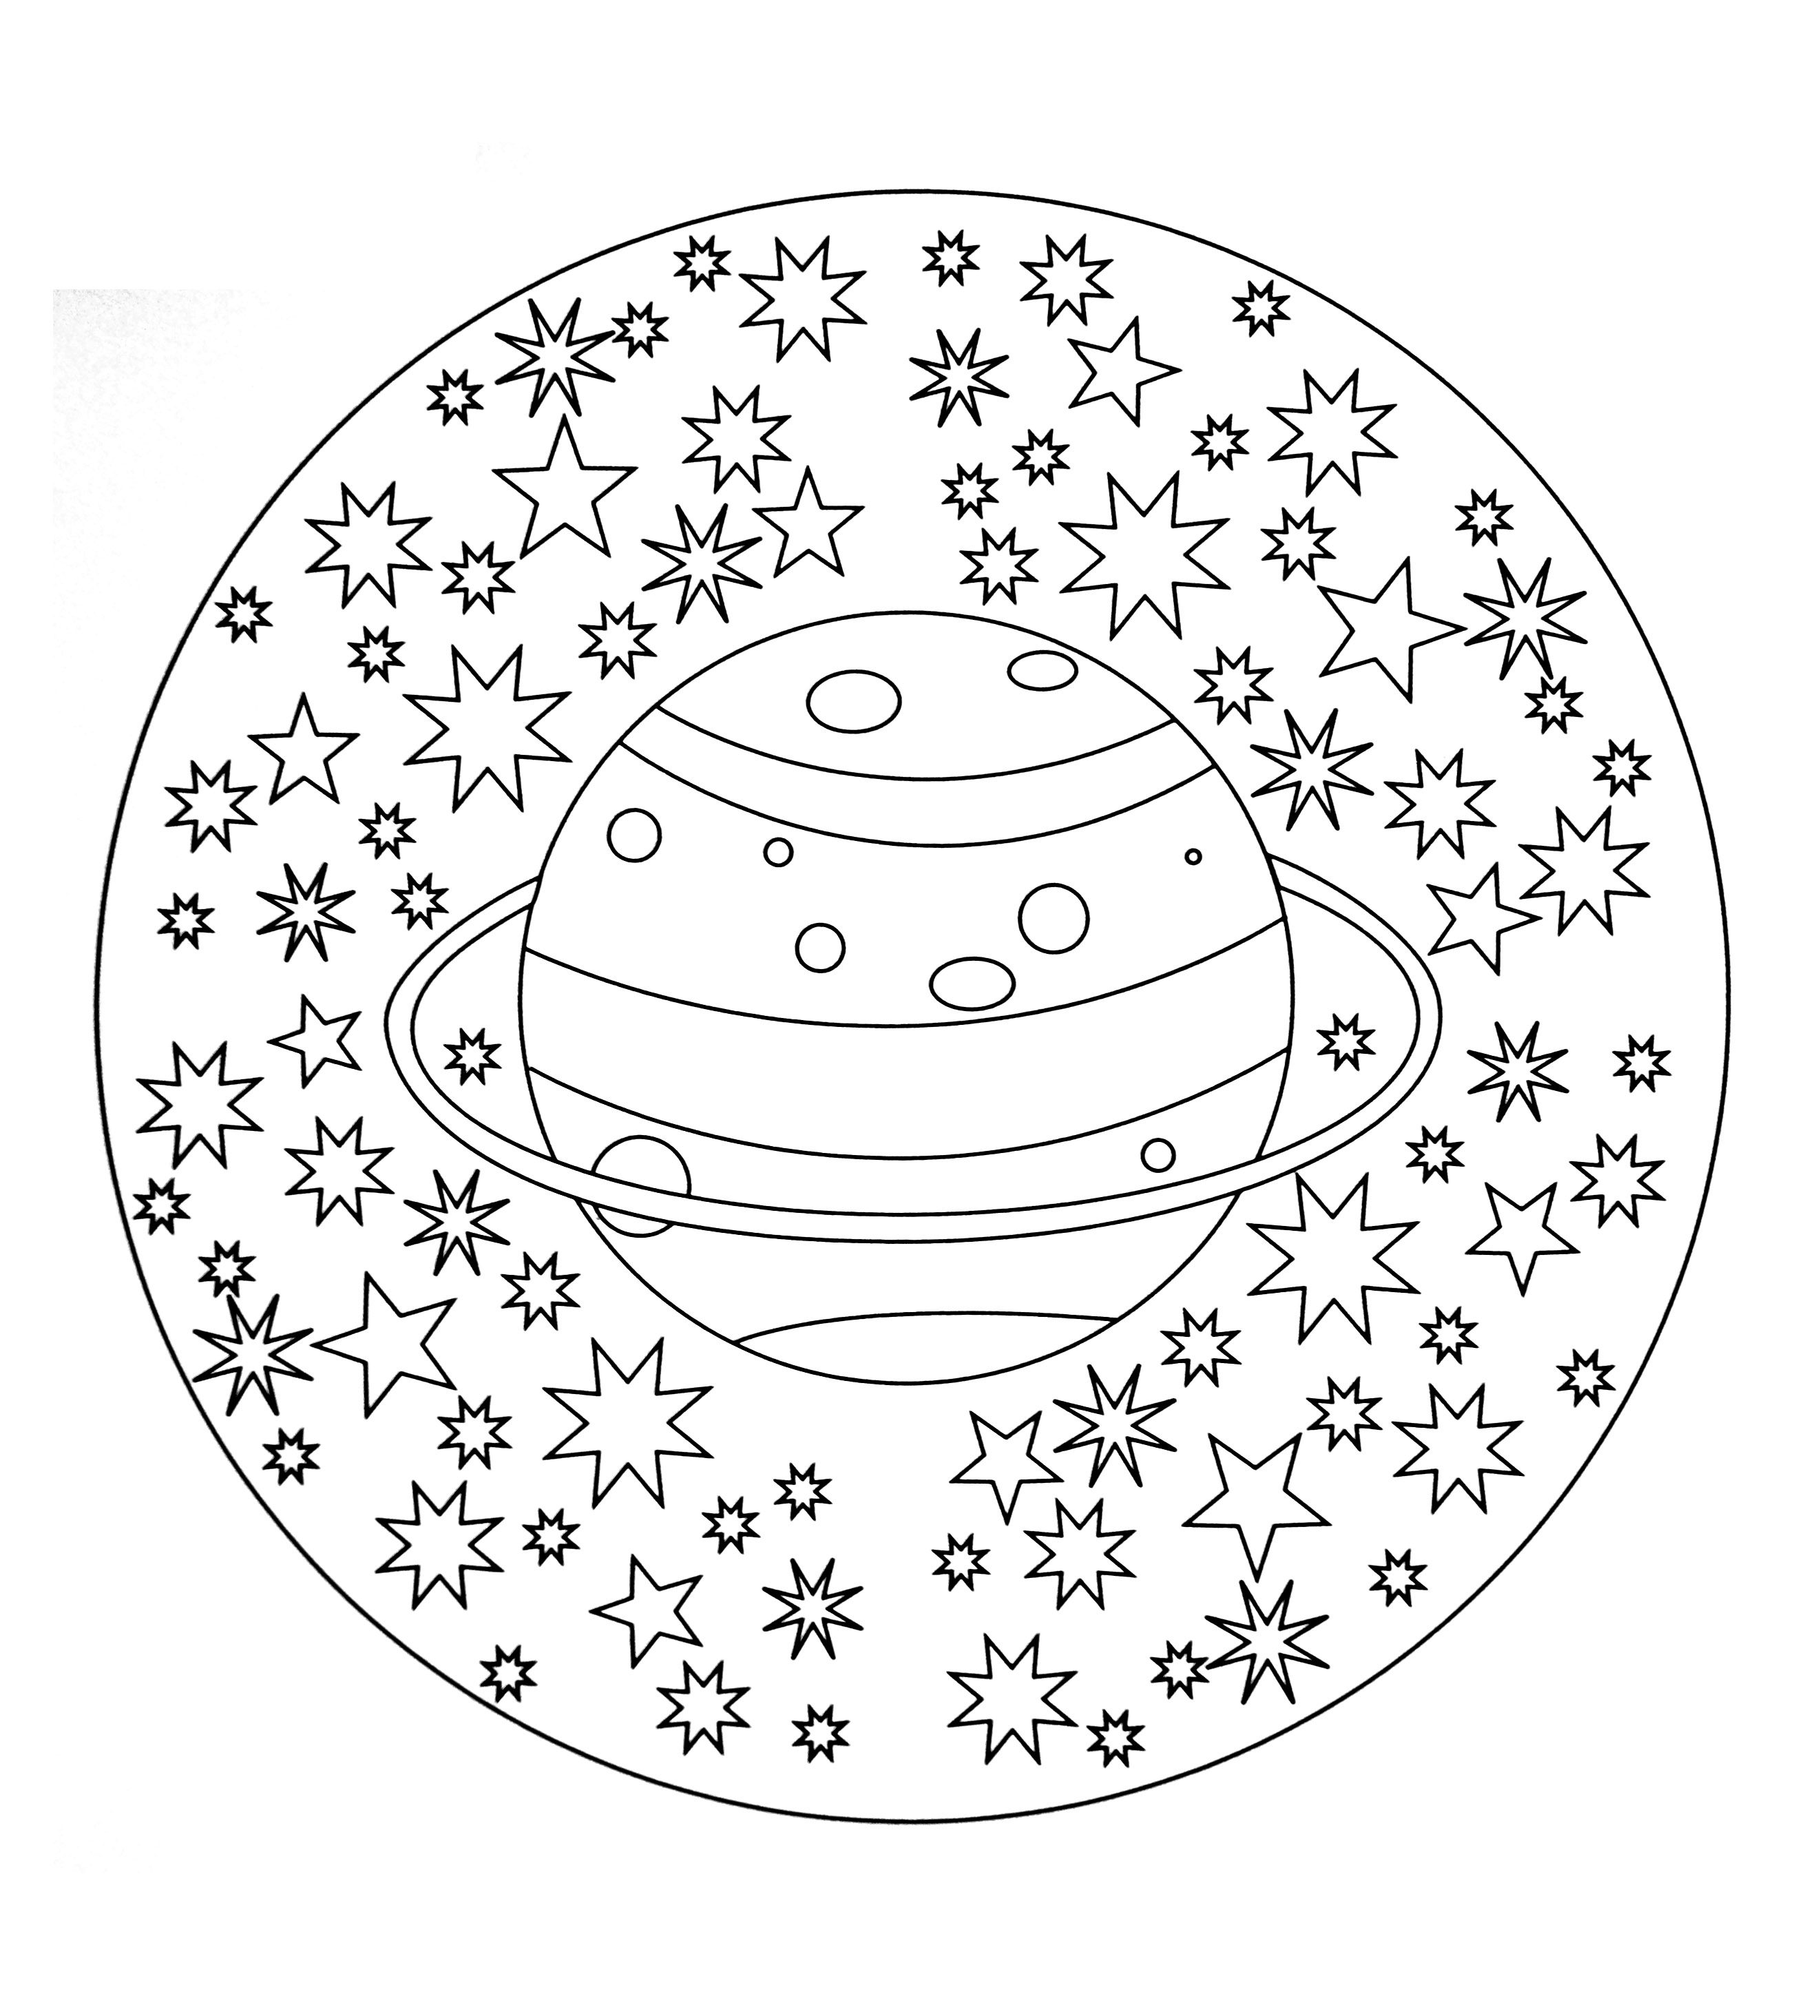 coloring pages for kids simple mandala 19 print - Simple Mandala Coloring Pages